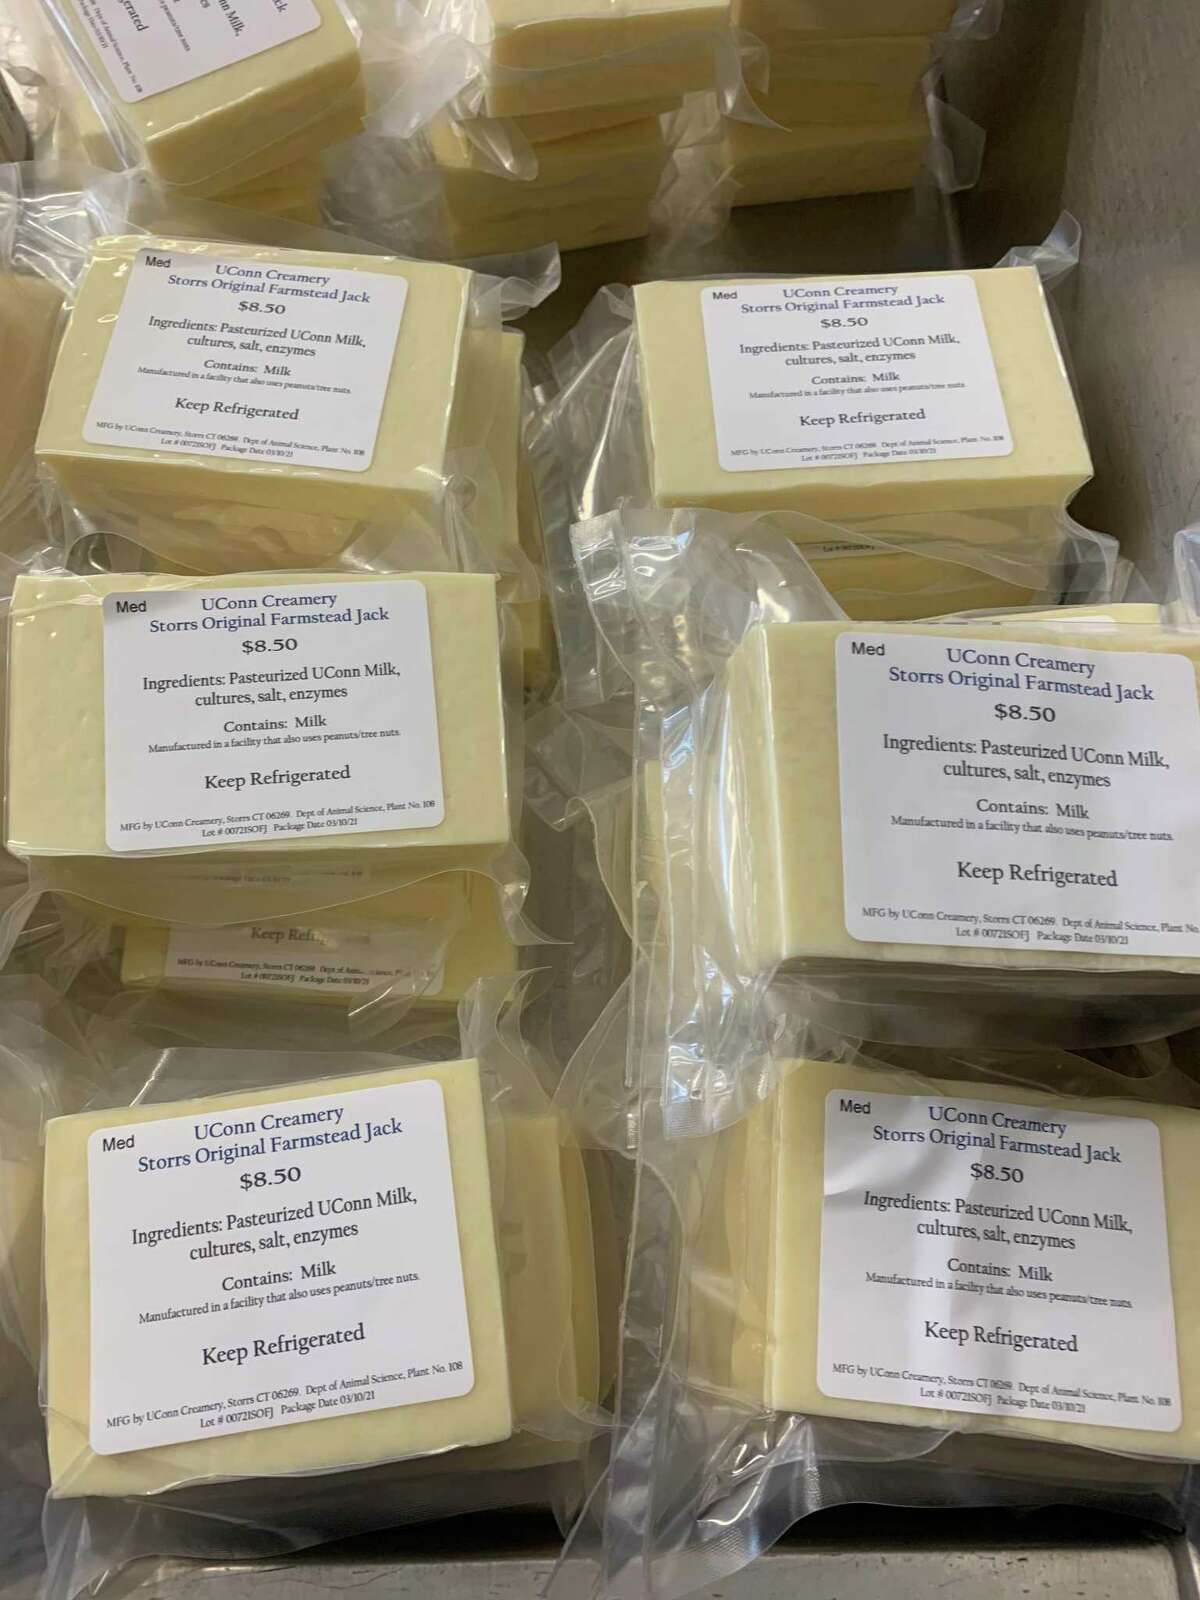 Cheese made at the UConn creamery and sold at the iconic university Dairy Bar.